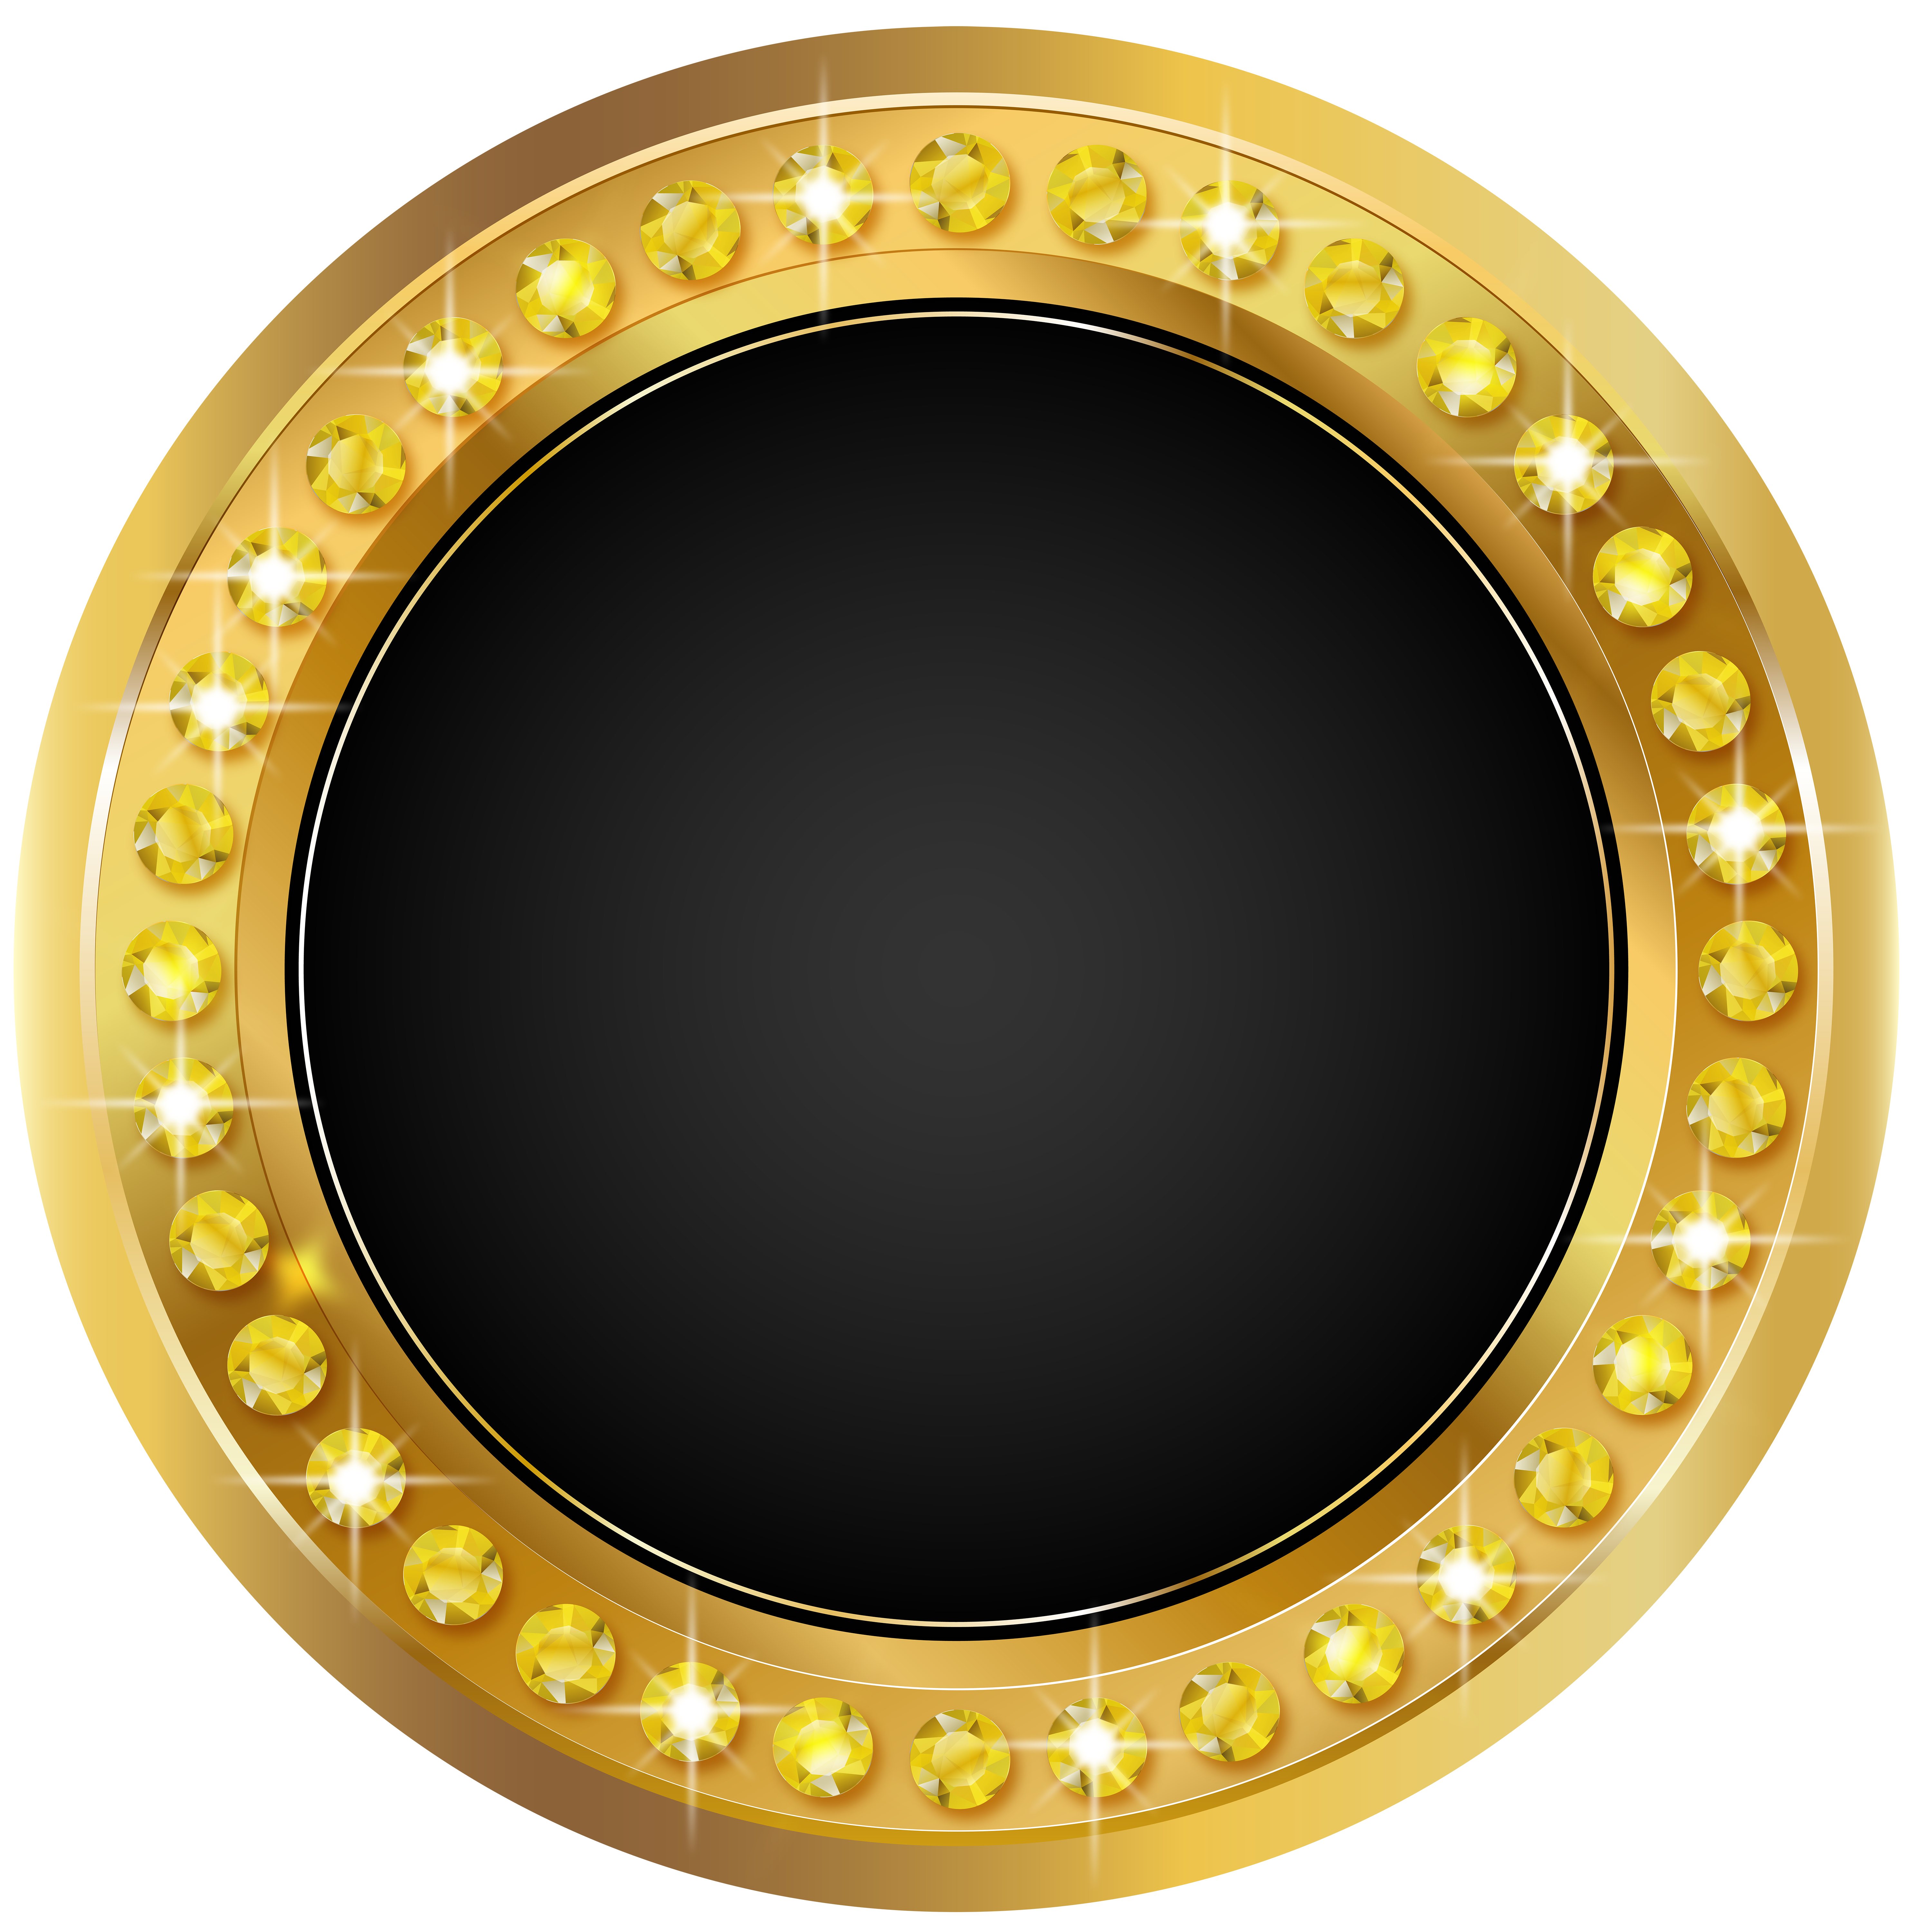 Seal Gold Black Png Transparent Clip Art Image Gallery Yopriceville High Quality Images And Transparent Png Free Clip Art Digital Graphics Art Art Images